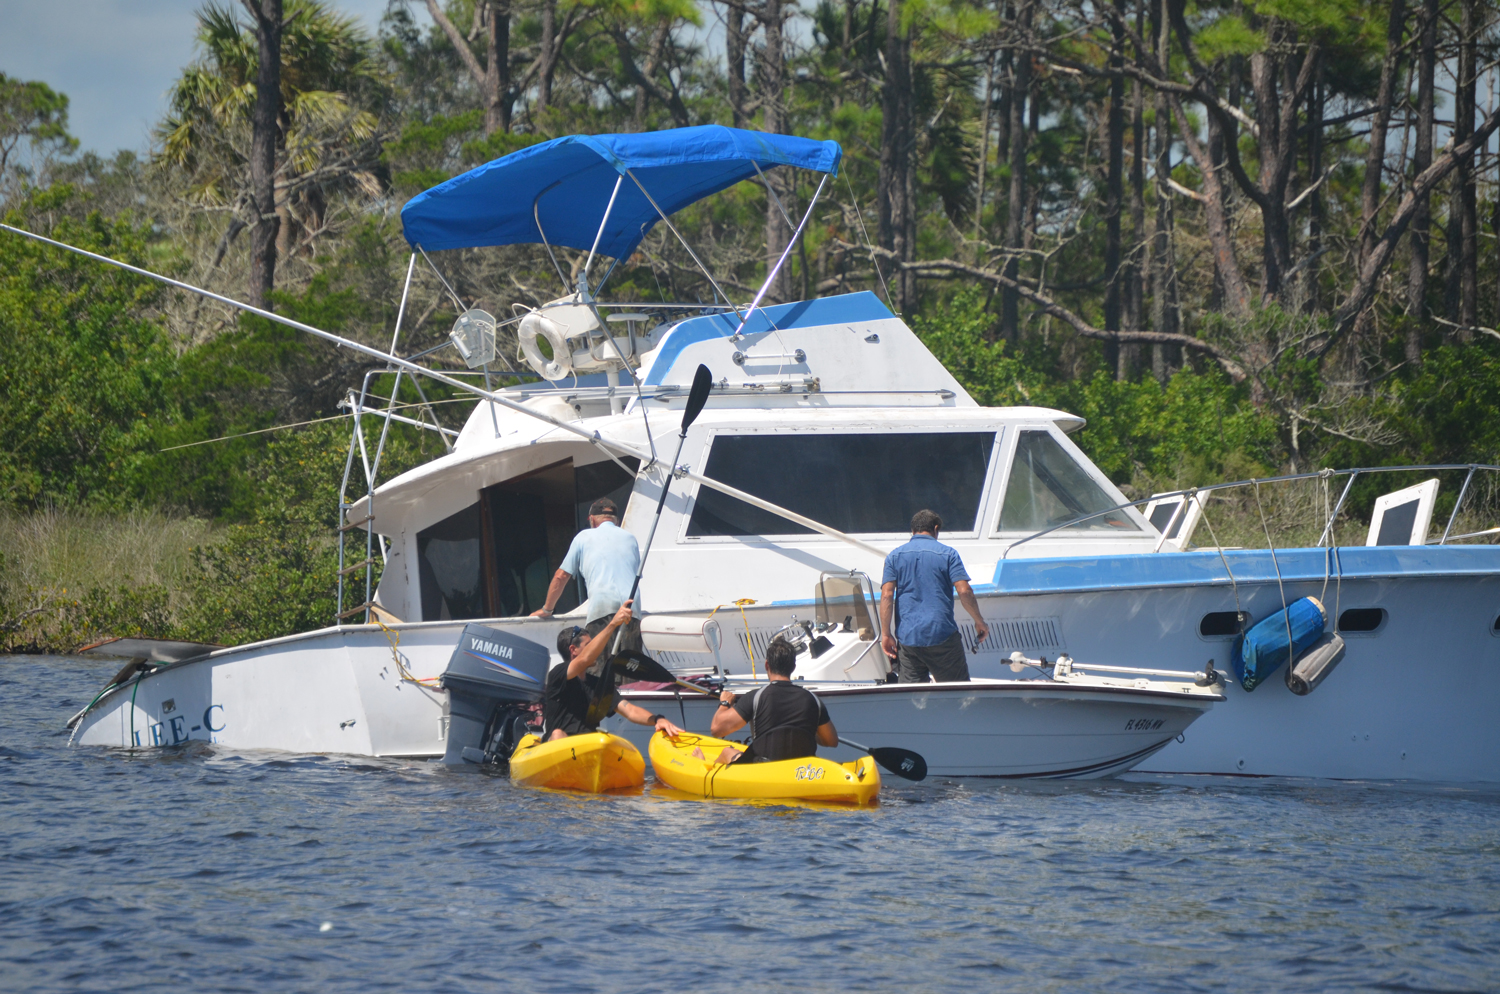 Three Occupants Pulled from 41-Foot Hatteras Yacht Sinking